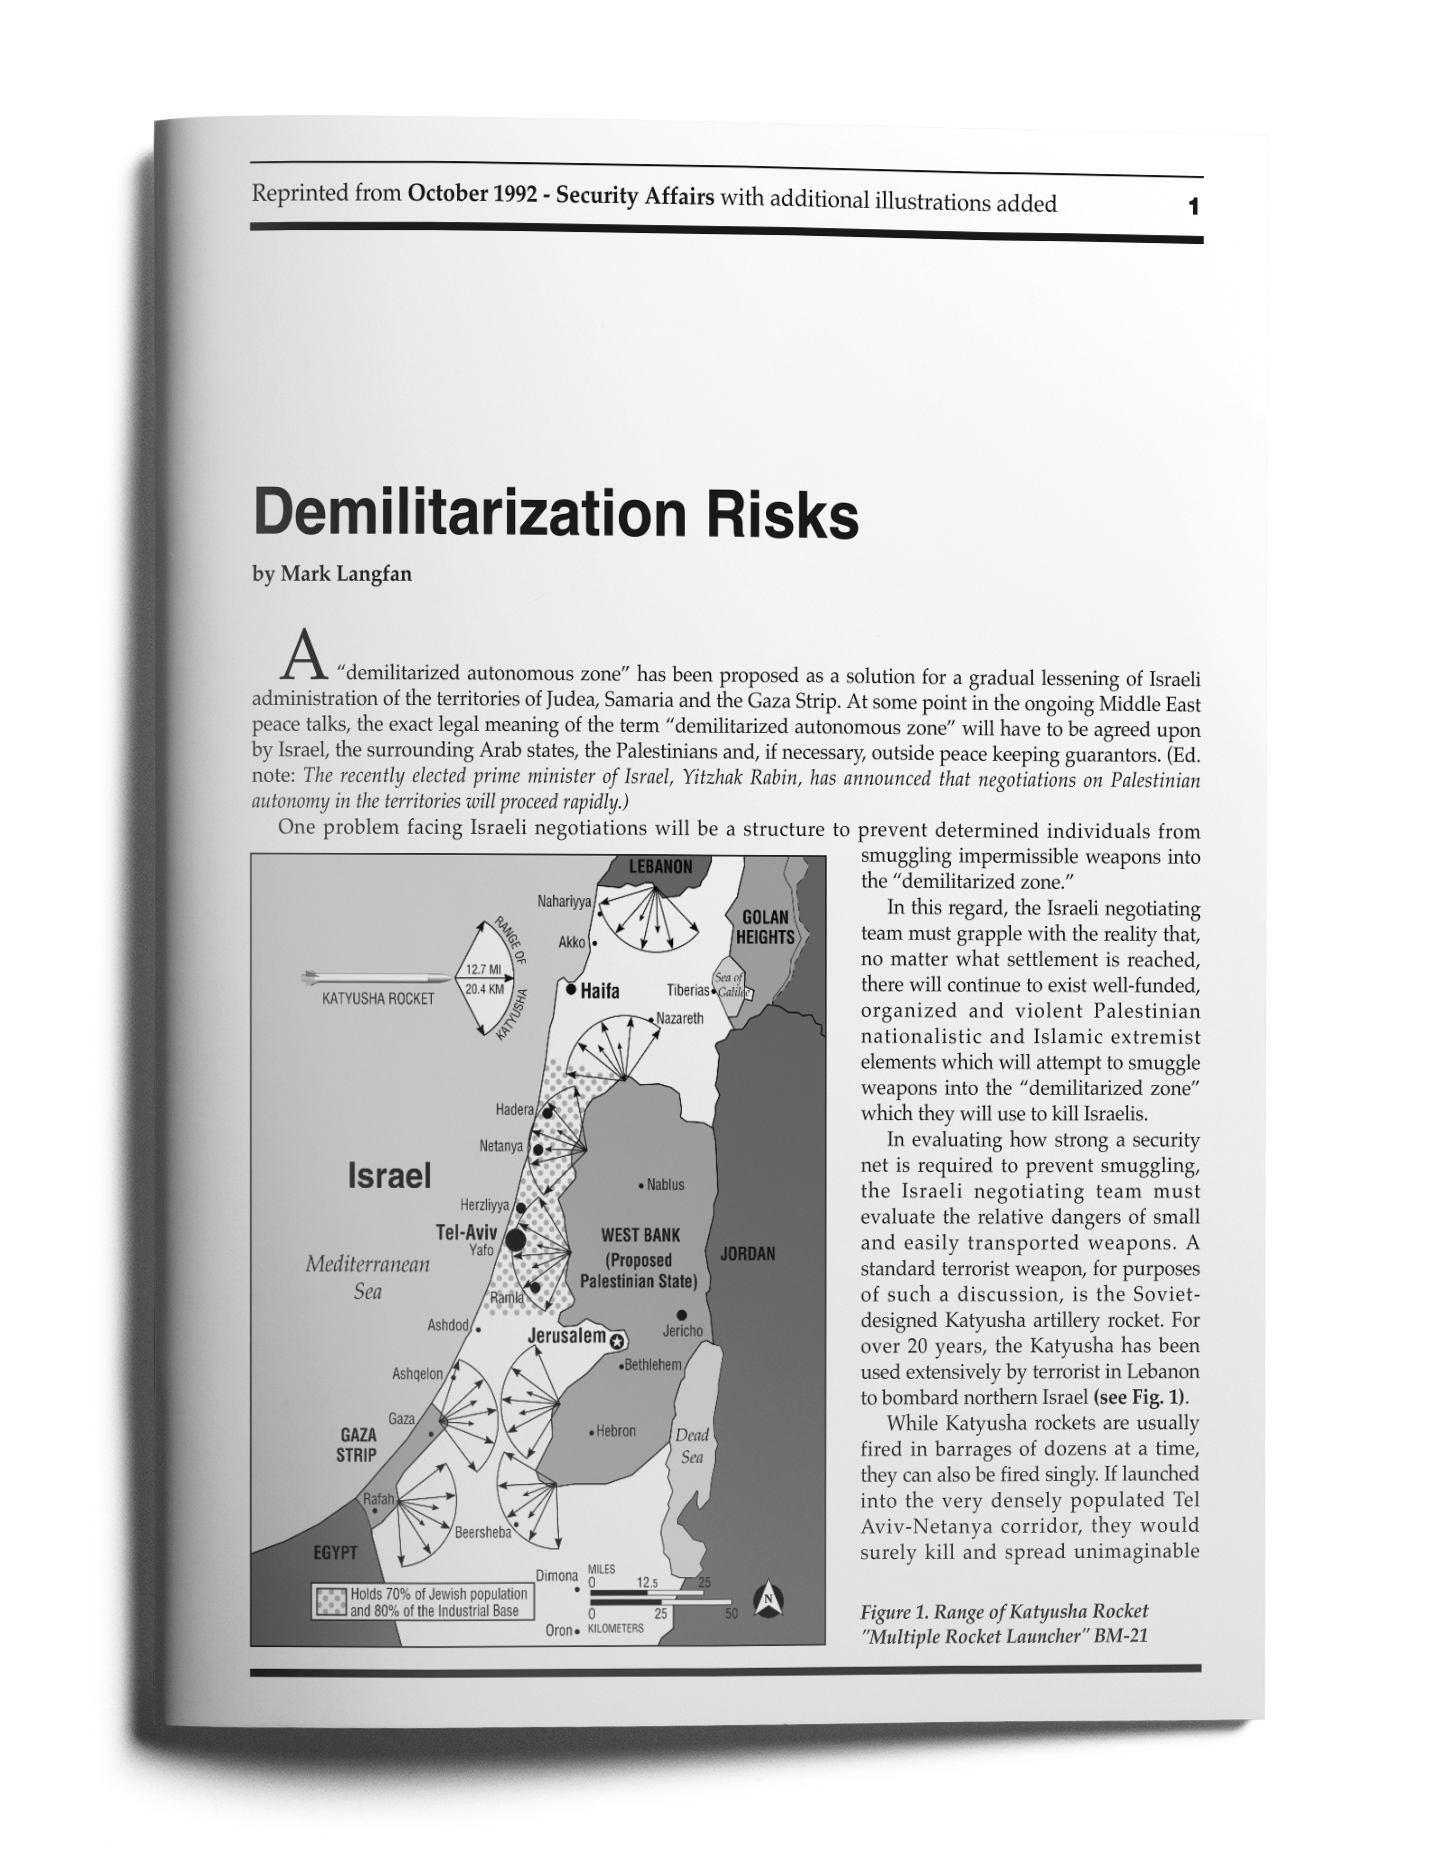 What is demilitarization